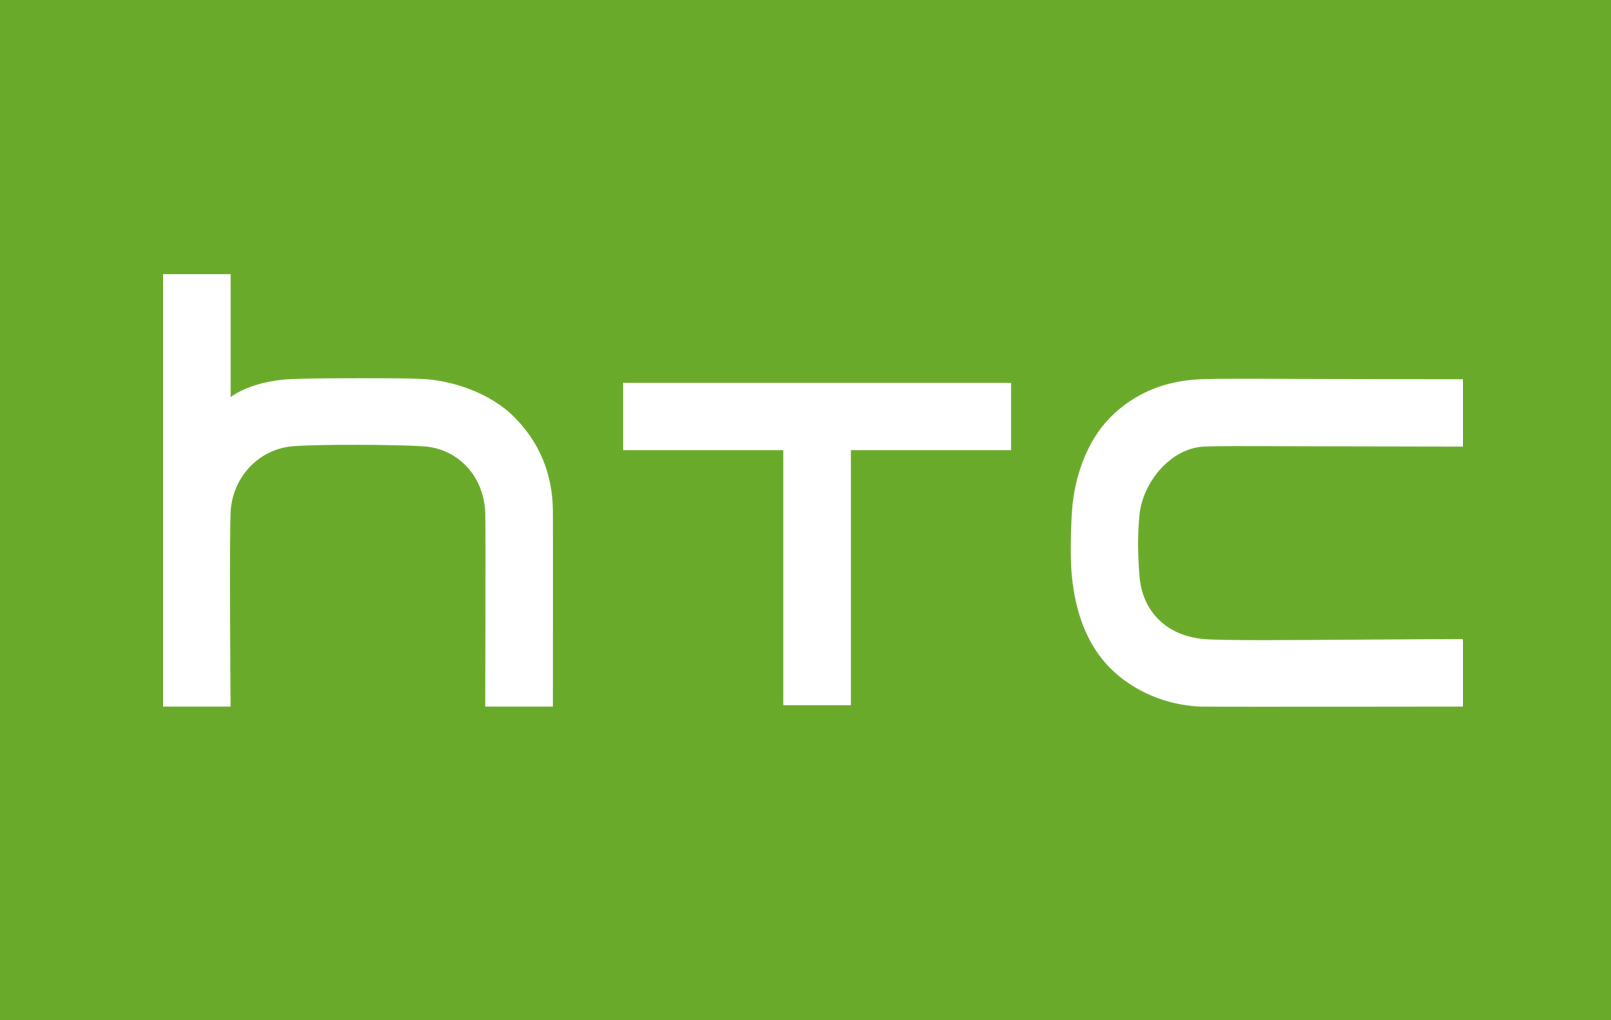 Htc Logo Png (98+ images in Collection) Page 3.